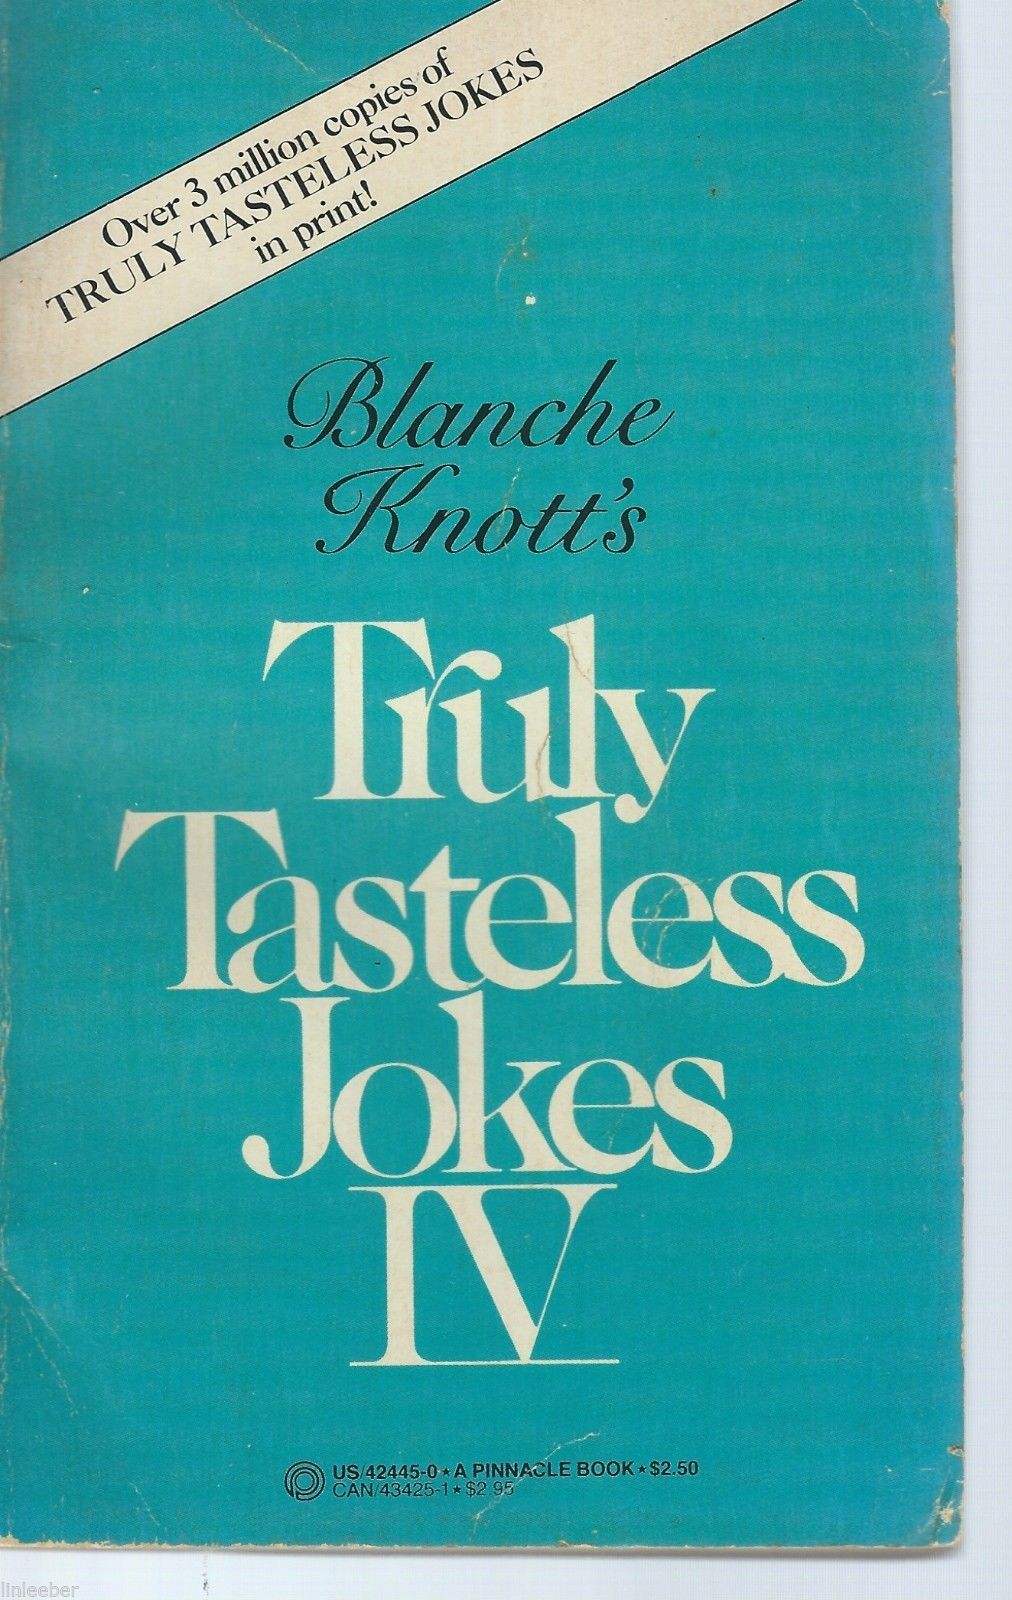 Truly Tasteless Jokes IV by Blanche Knott;1984 First Printing;Pinnacle Paperbook